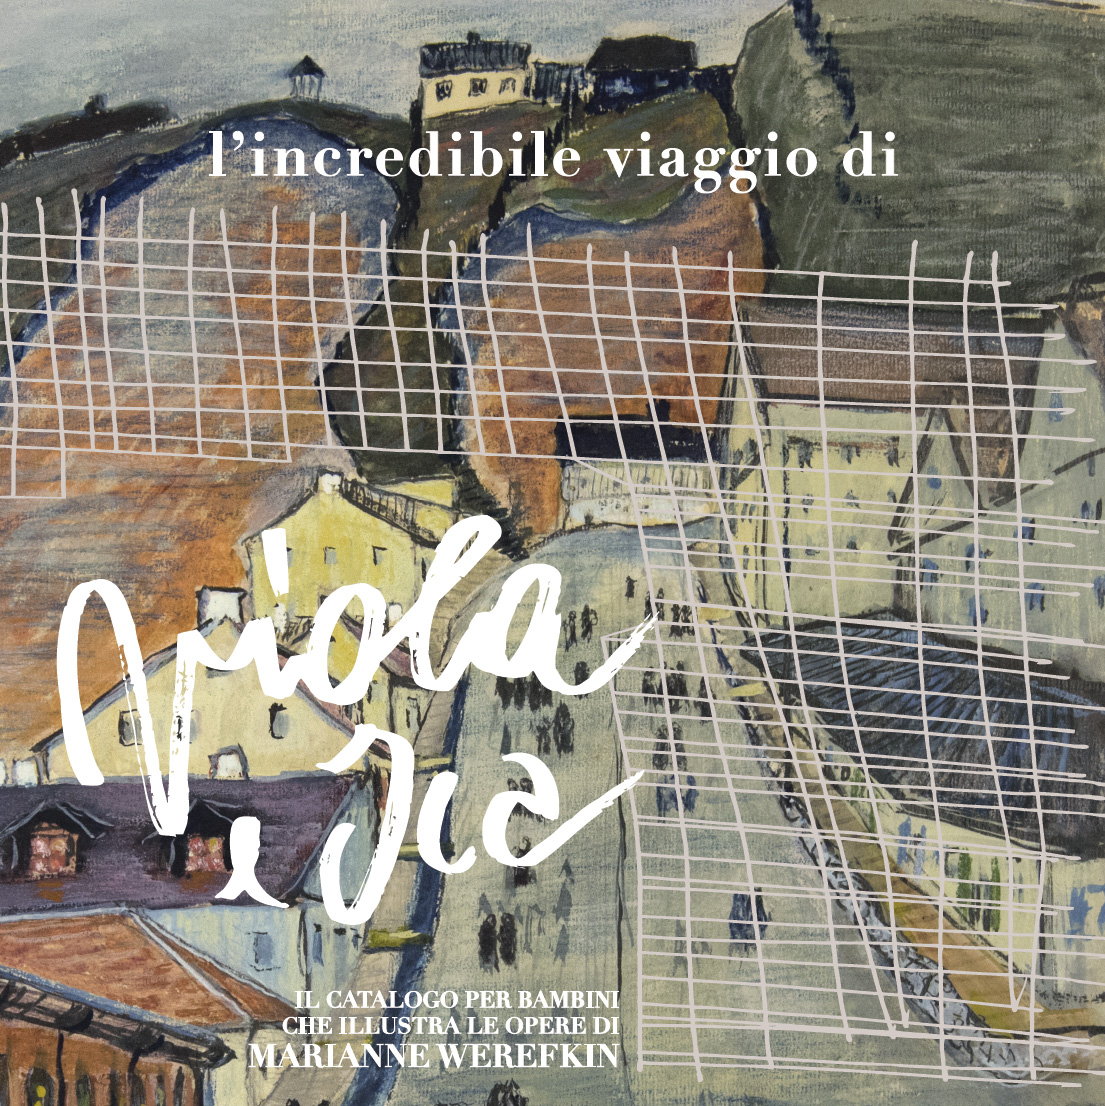 L'incredibile viaggio di Viola e Ica